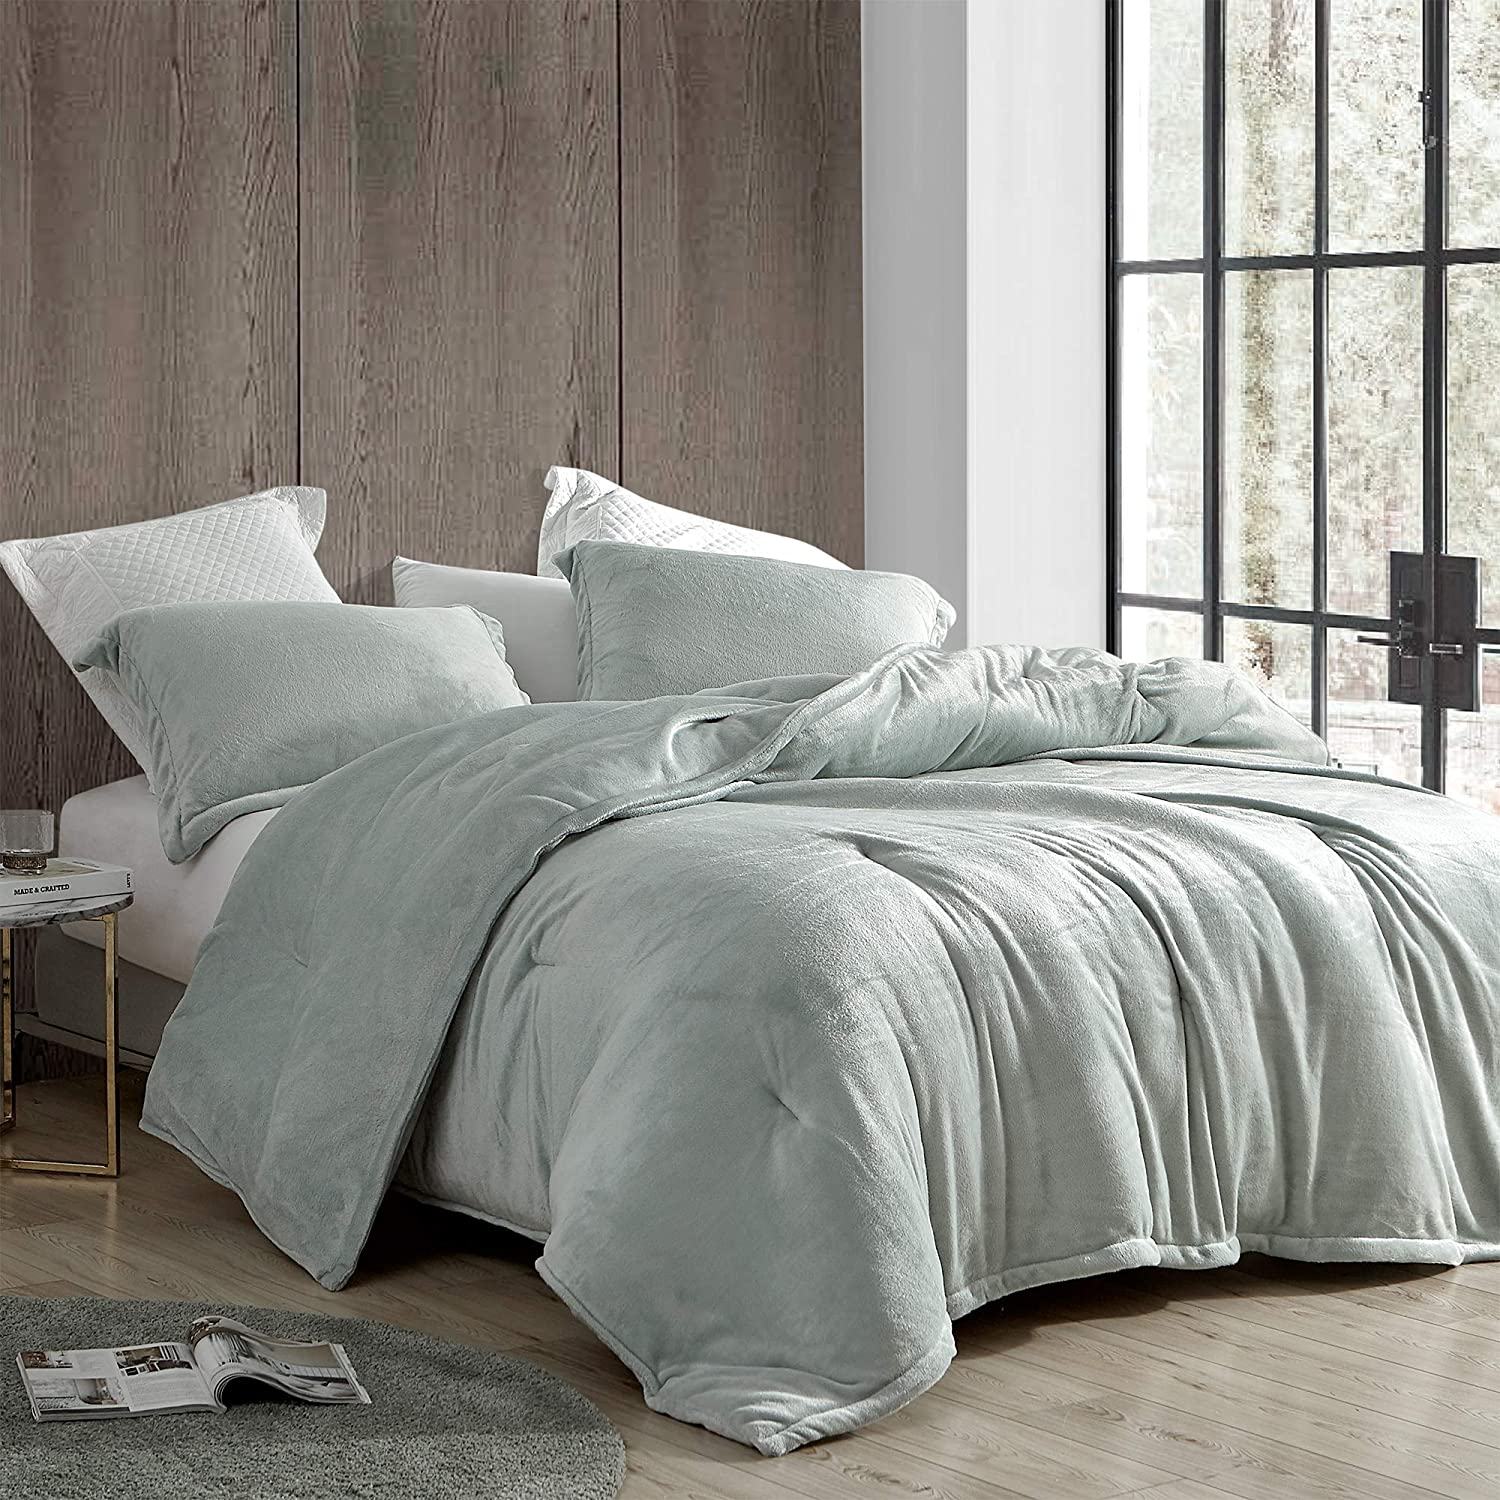 Coma Inducer Twin XL Comforter Touchy Mineral Feely Gray Max 55% OFF Max 48% OFF -